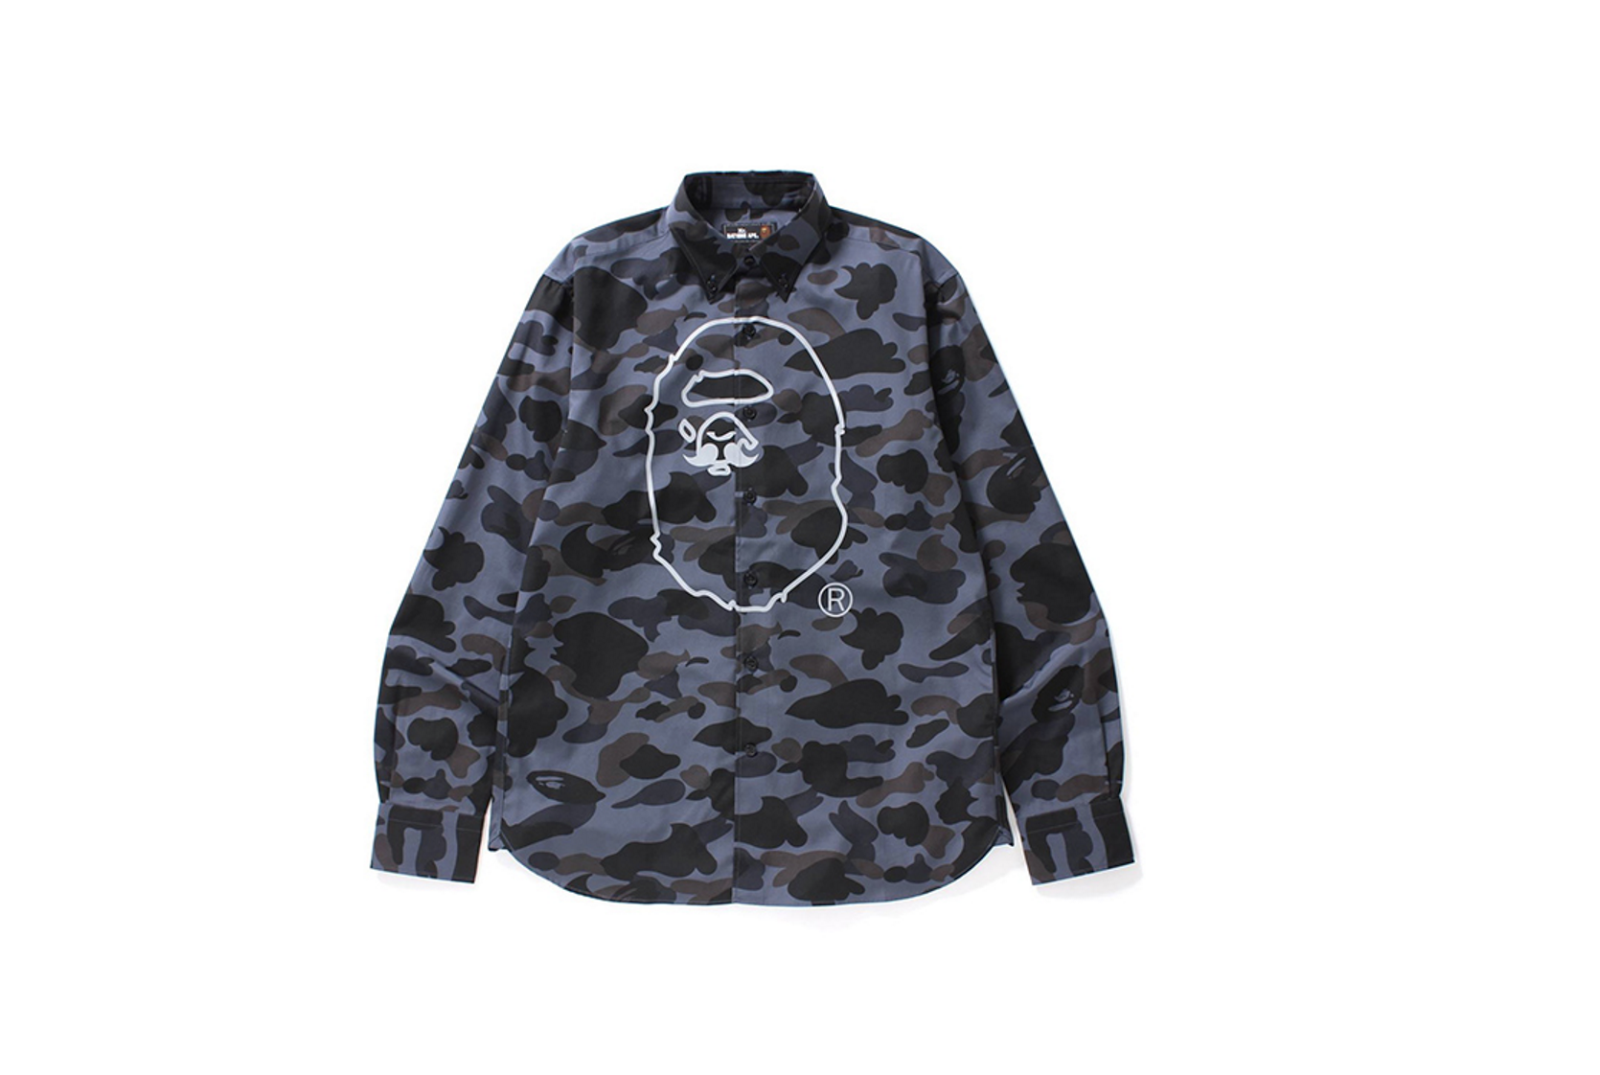 15cd8c89 Camo button down shirts, sharp graphic tee's and sweats, and minimalist  hats, all with the BAPE head, each adding the Mr. BATHING APE moustache.